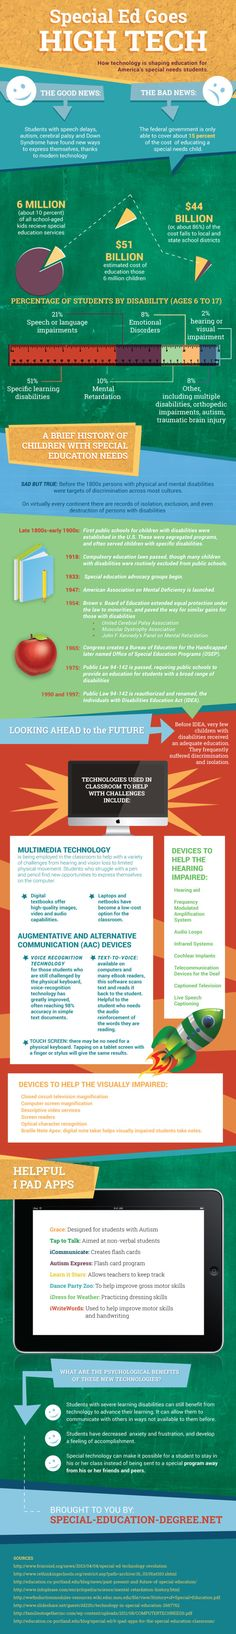 How Technology Is Being Used In Special Ed #EdTech #education